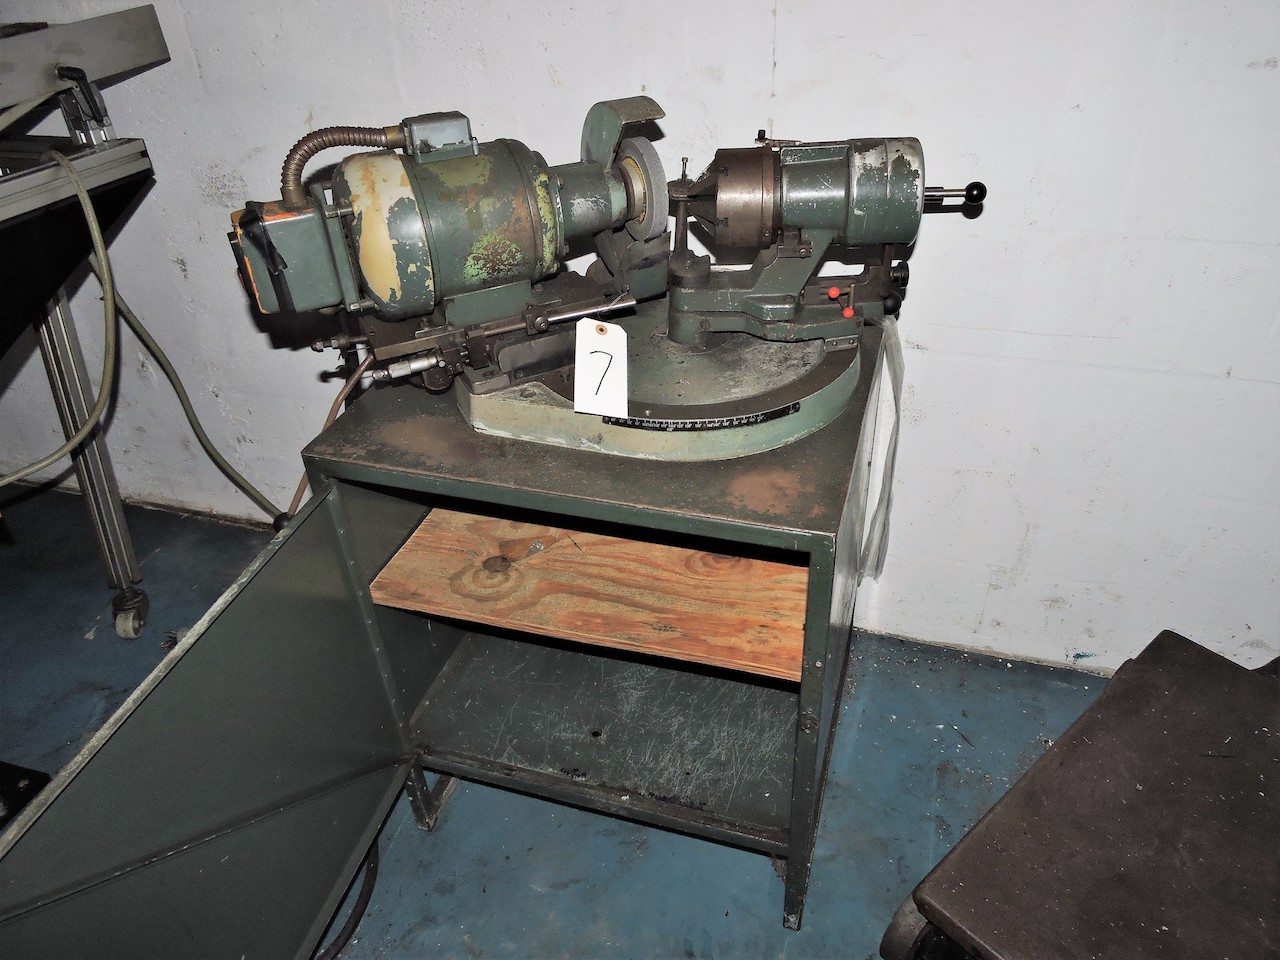 Lot 7 - GRYPHON TOOL SHARPENER WITH CHUCK AND CABINET